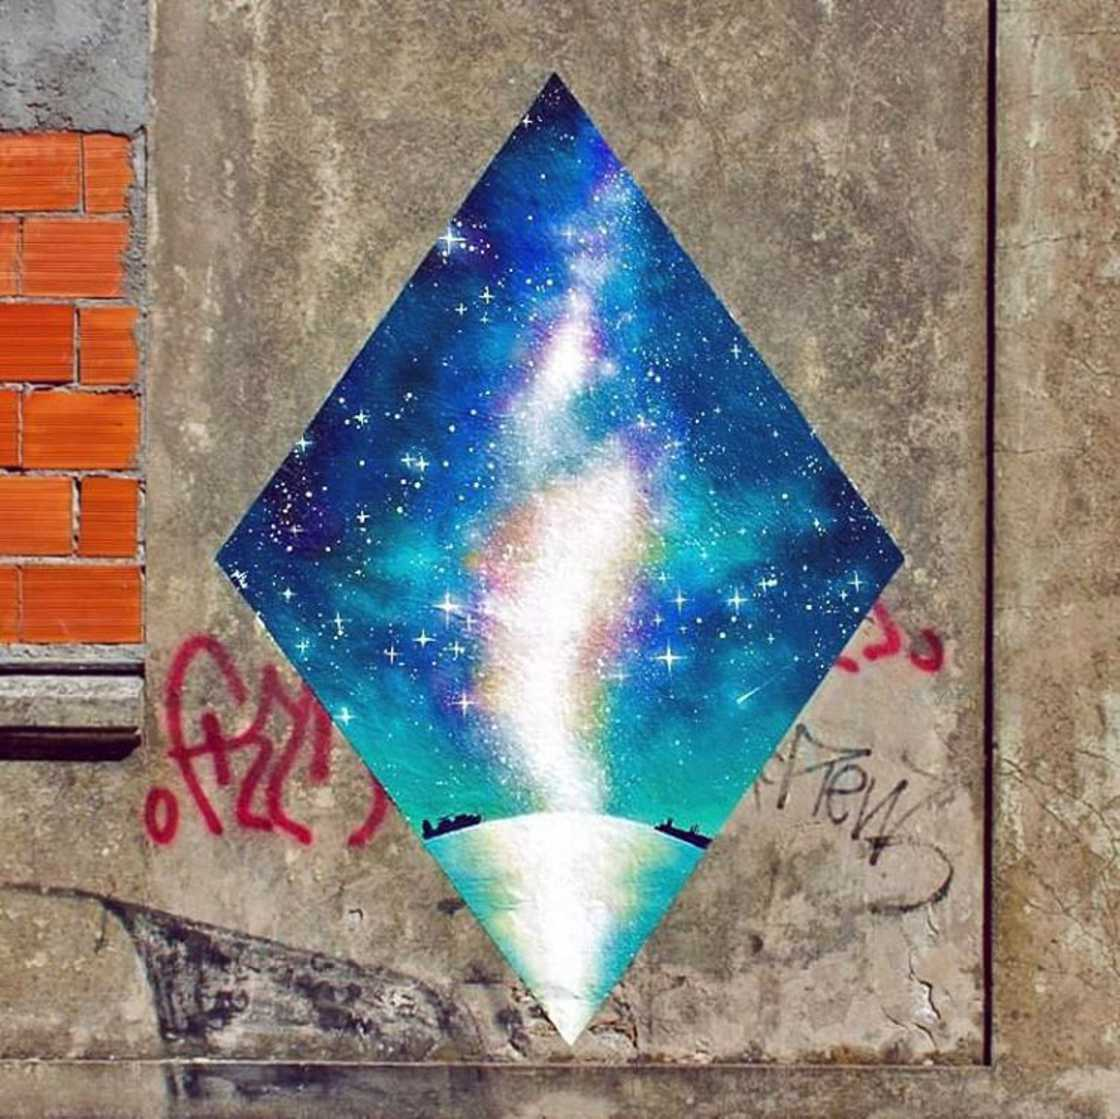 The cosmic street art of Mariana